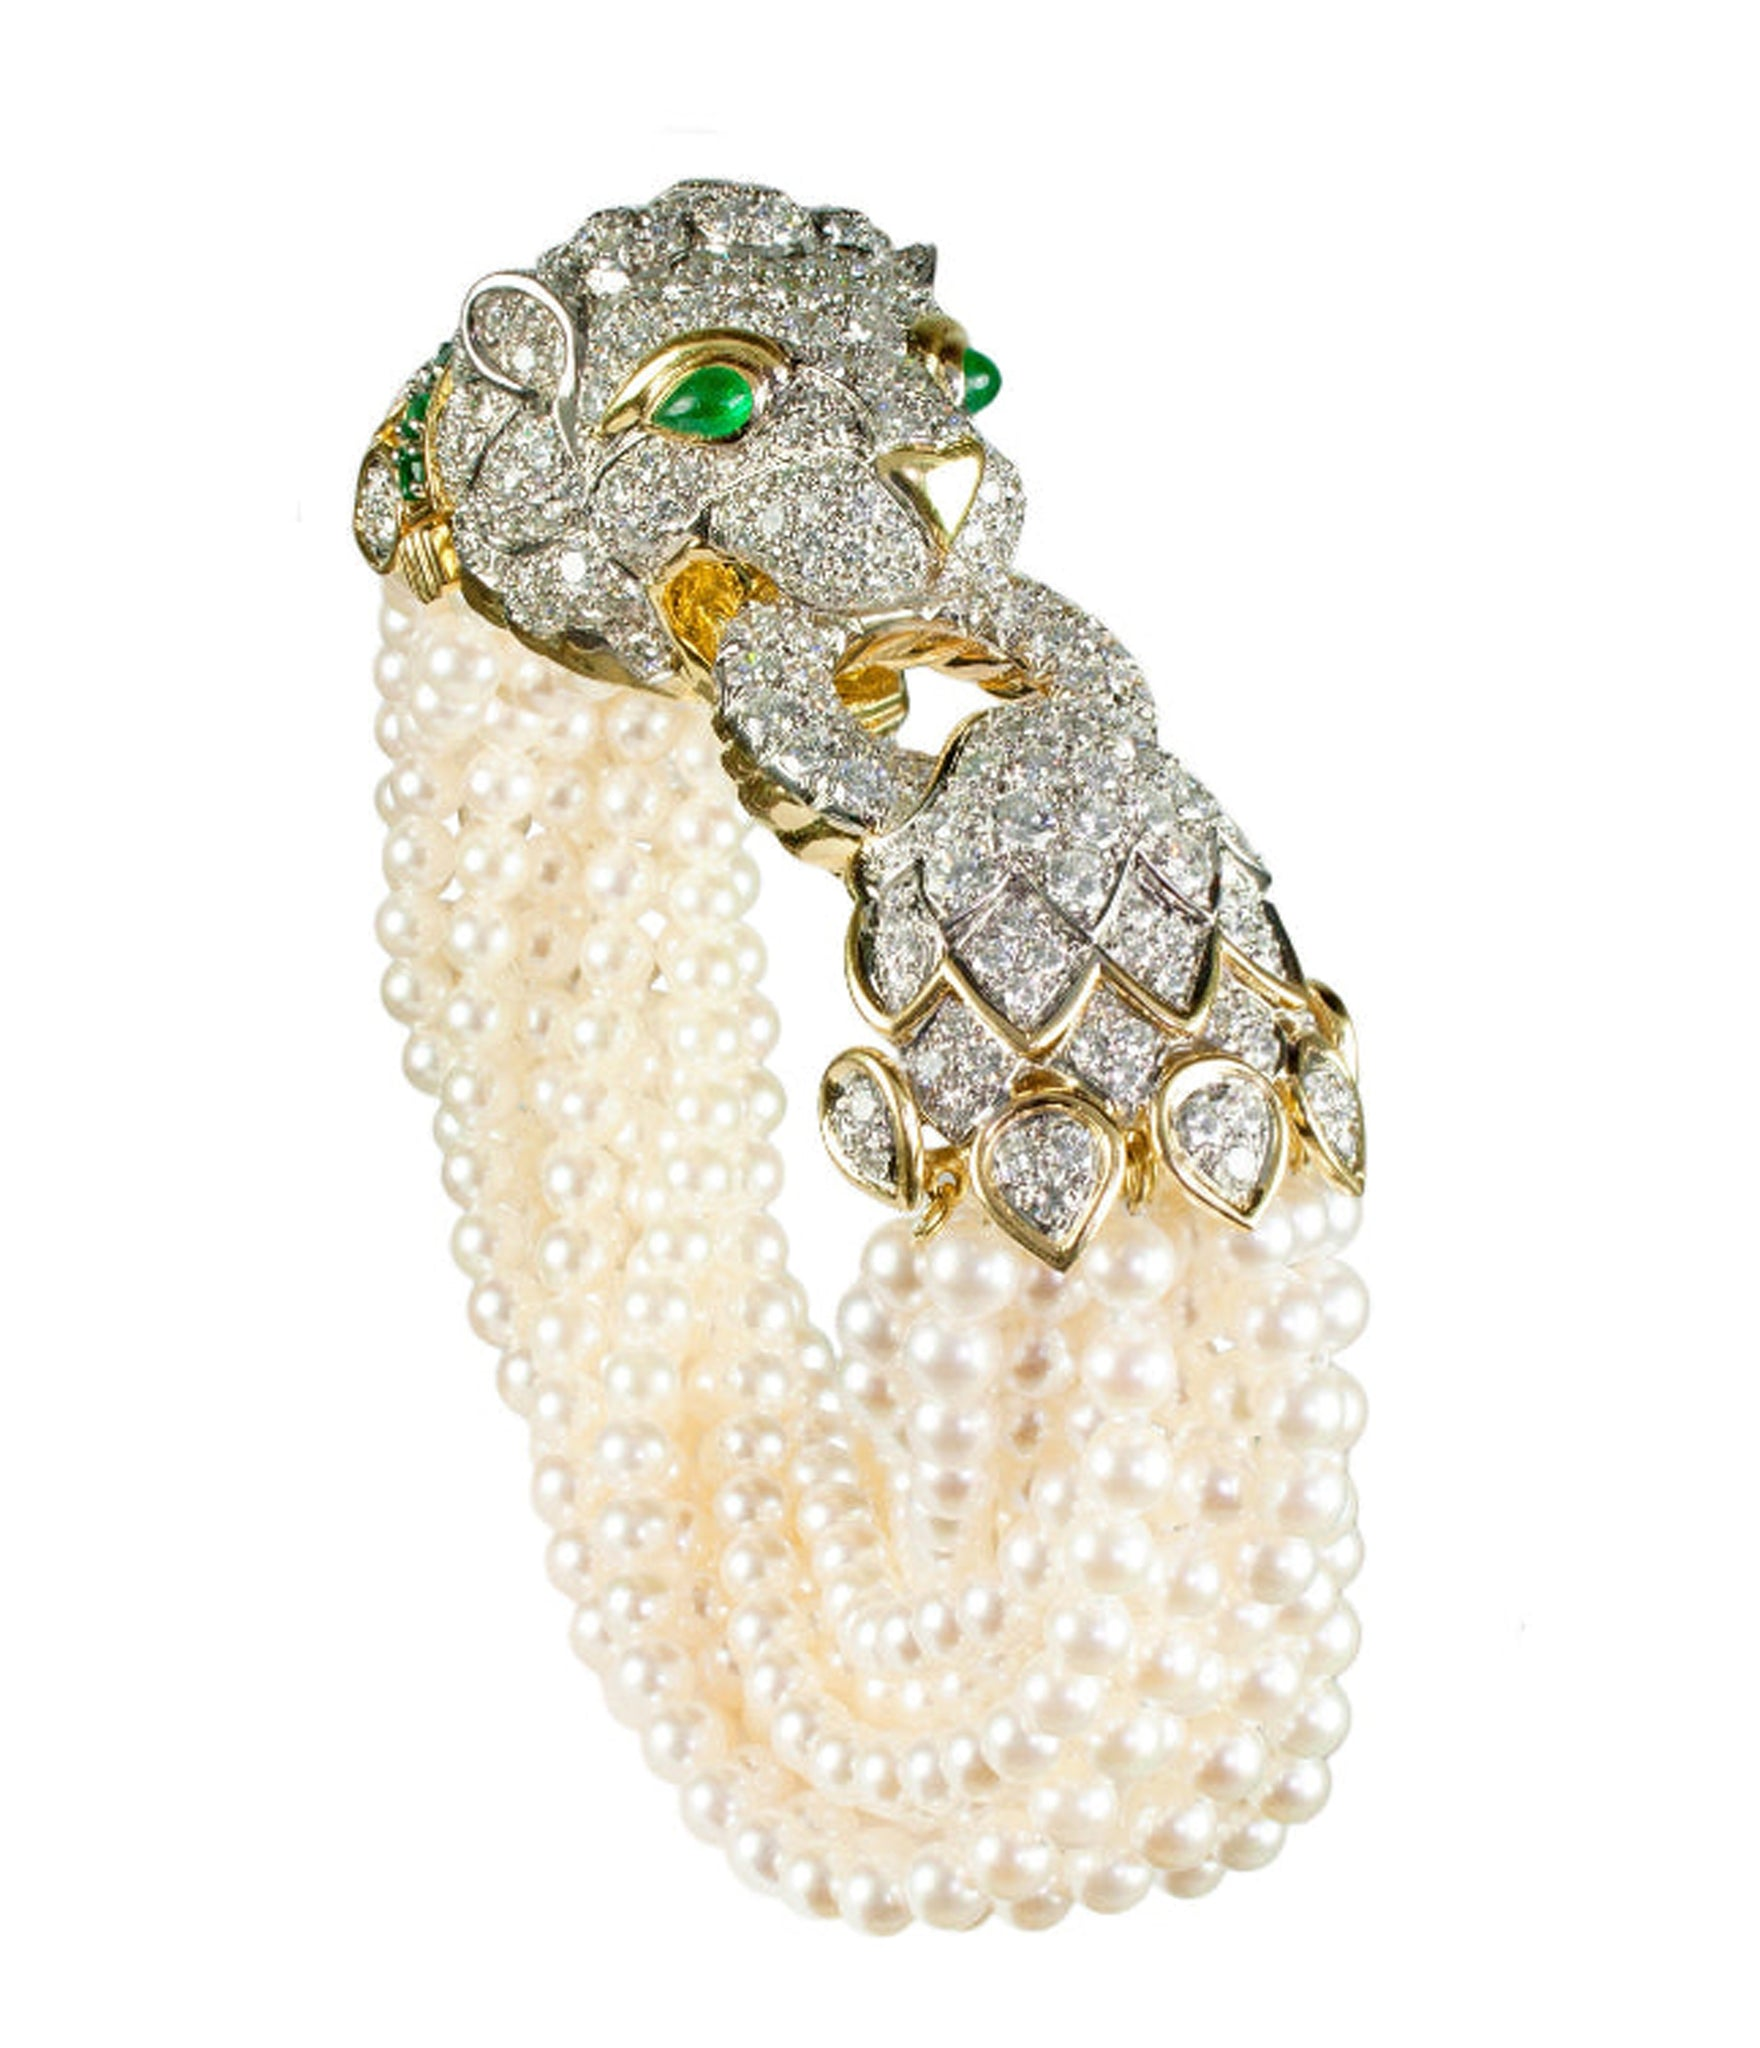 The Elizabeth Taylor Lion Bracelet